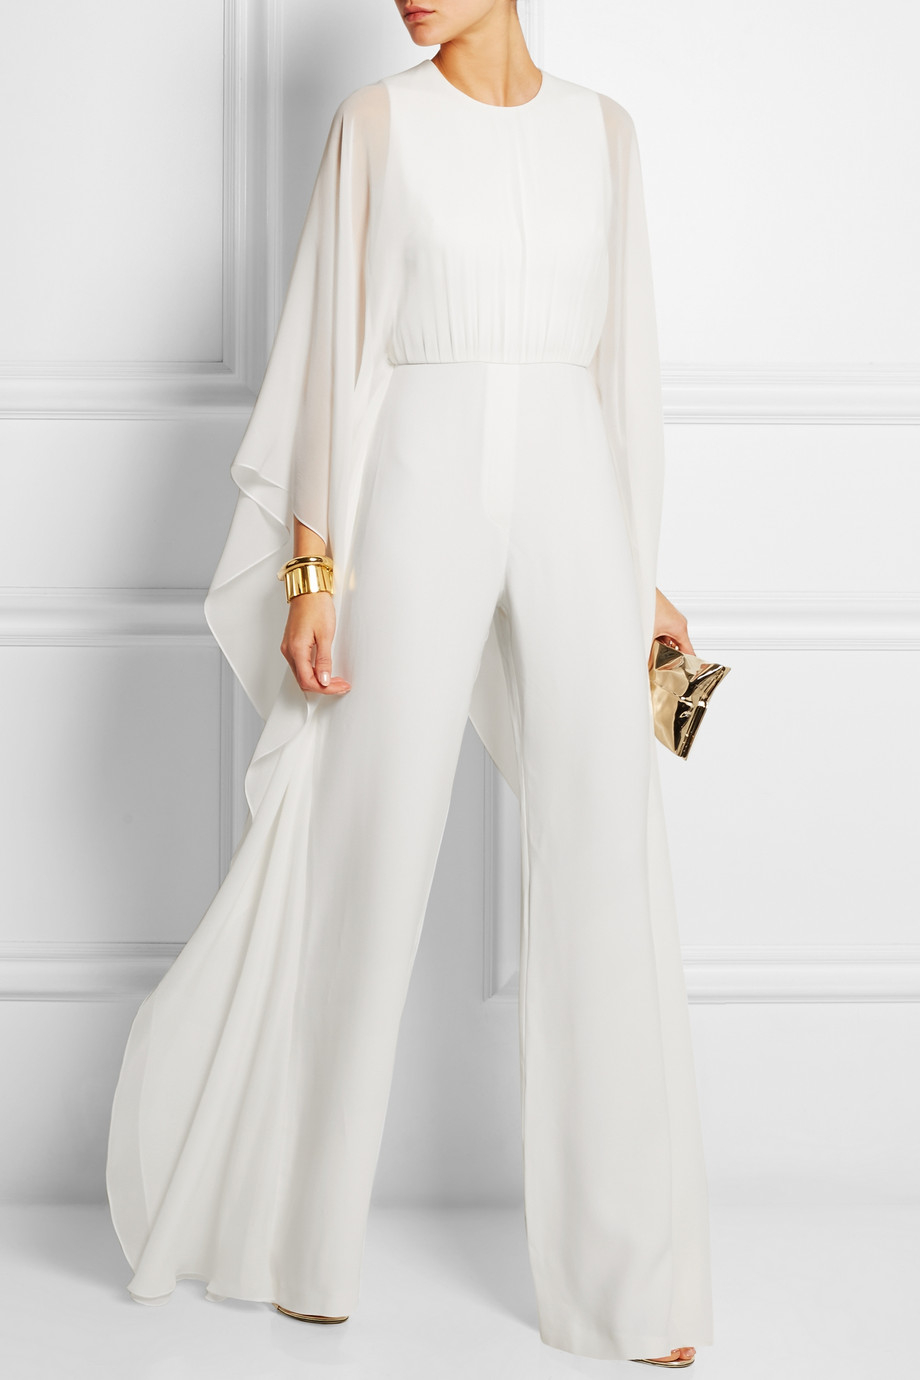 elie saab silk chiffon and stretch crepe jumpsuit in white. Black Bedroom Furniture Sets. Home Design Ideas